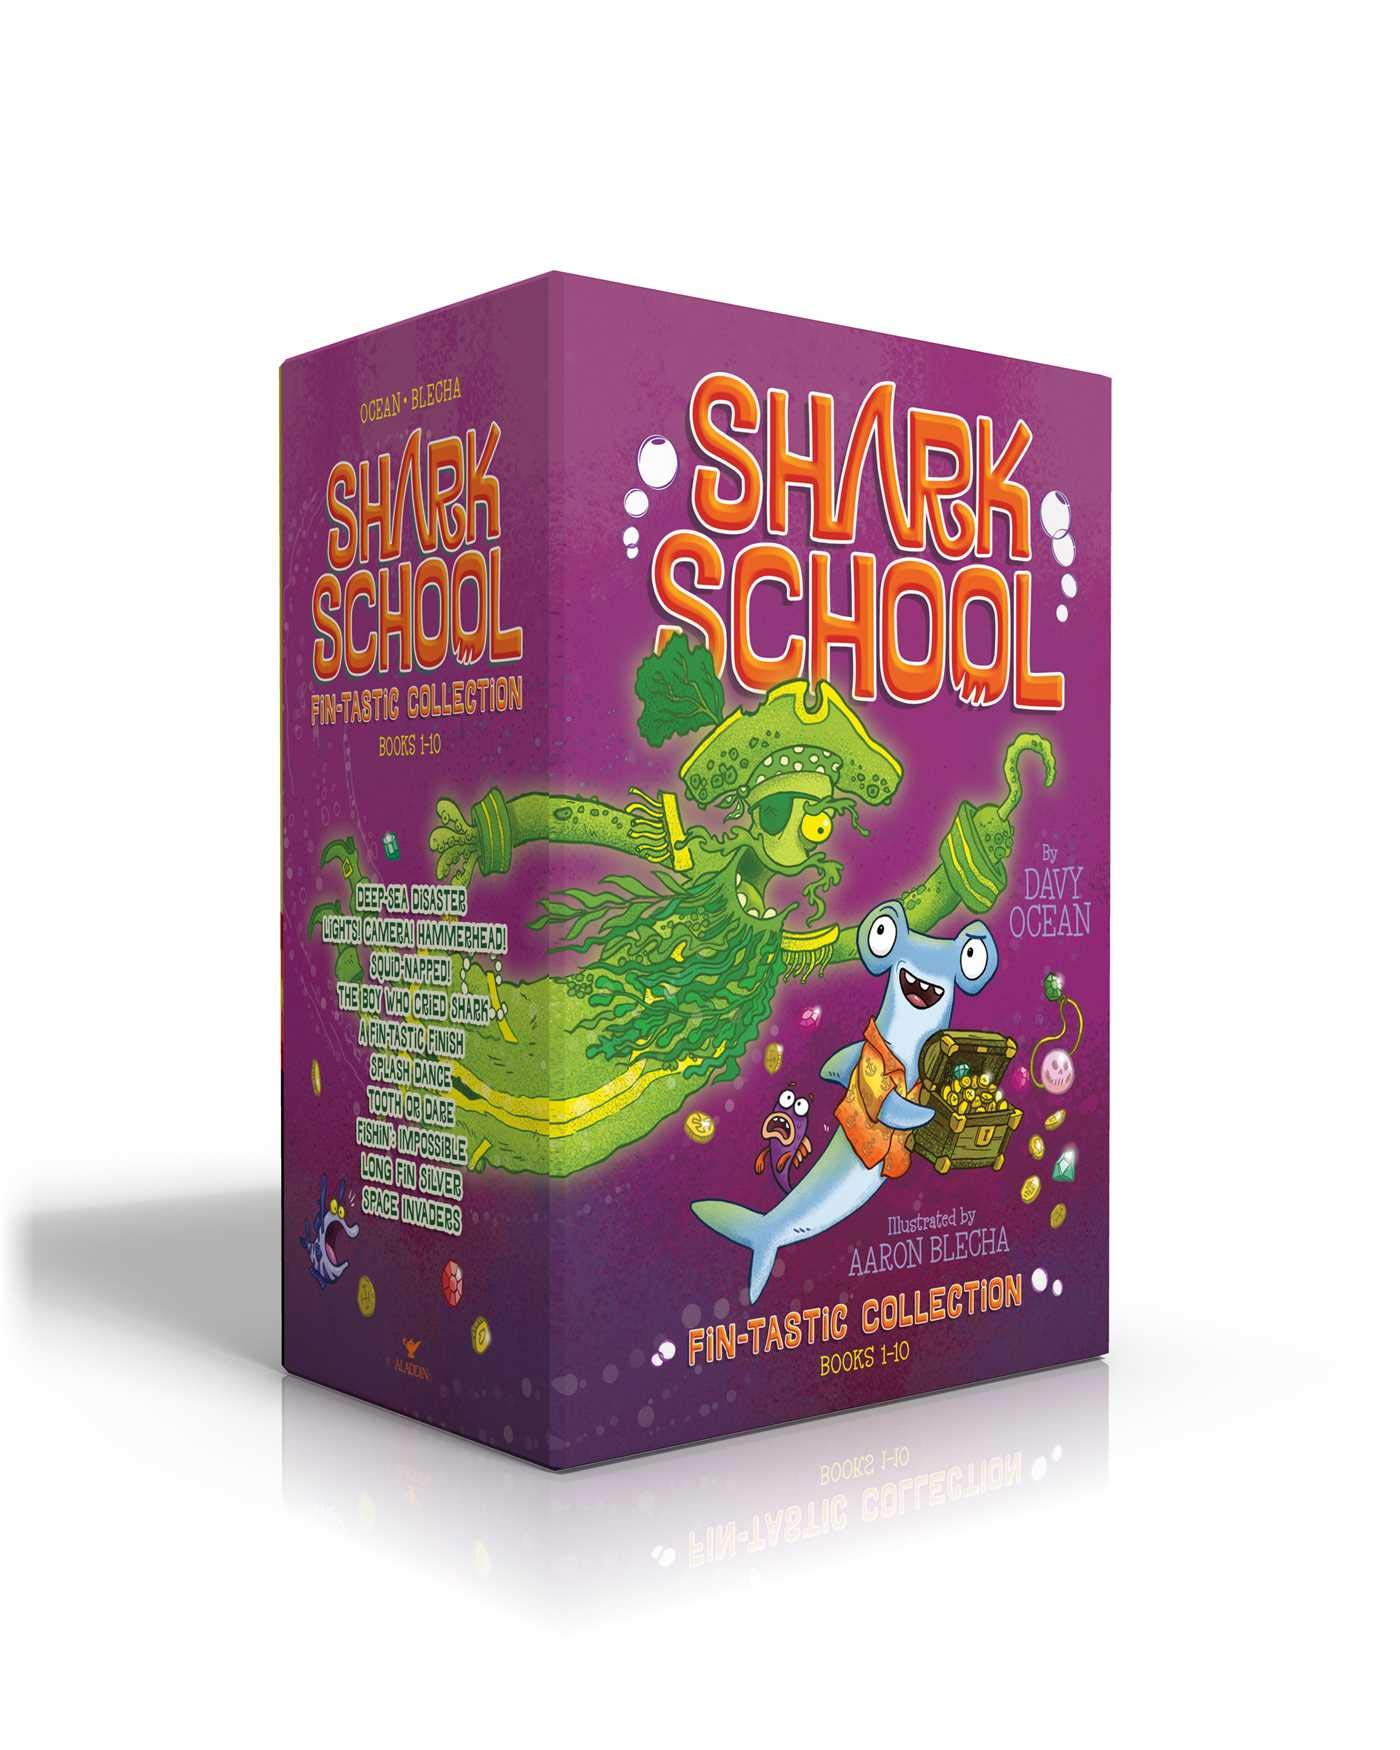 Shark School Fin-tastic Collection Books 1-10: Deep-Sea Disaster; Lights! Camera! Hammerhead!; Squid-napped!; The Boy Who Cried Shark; A Fin-tastic ... Impossible; Long Fin Silver; Space Invaders